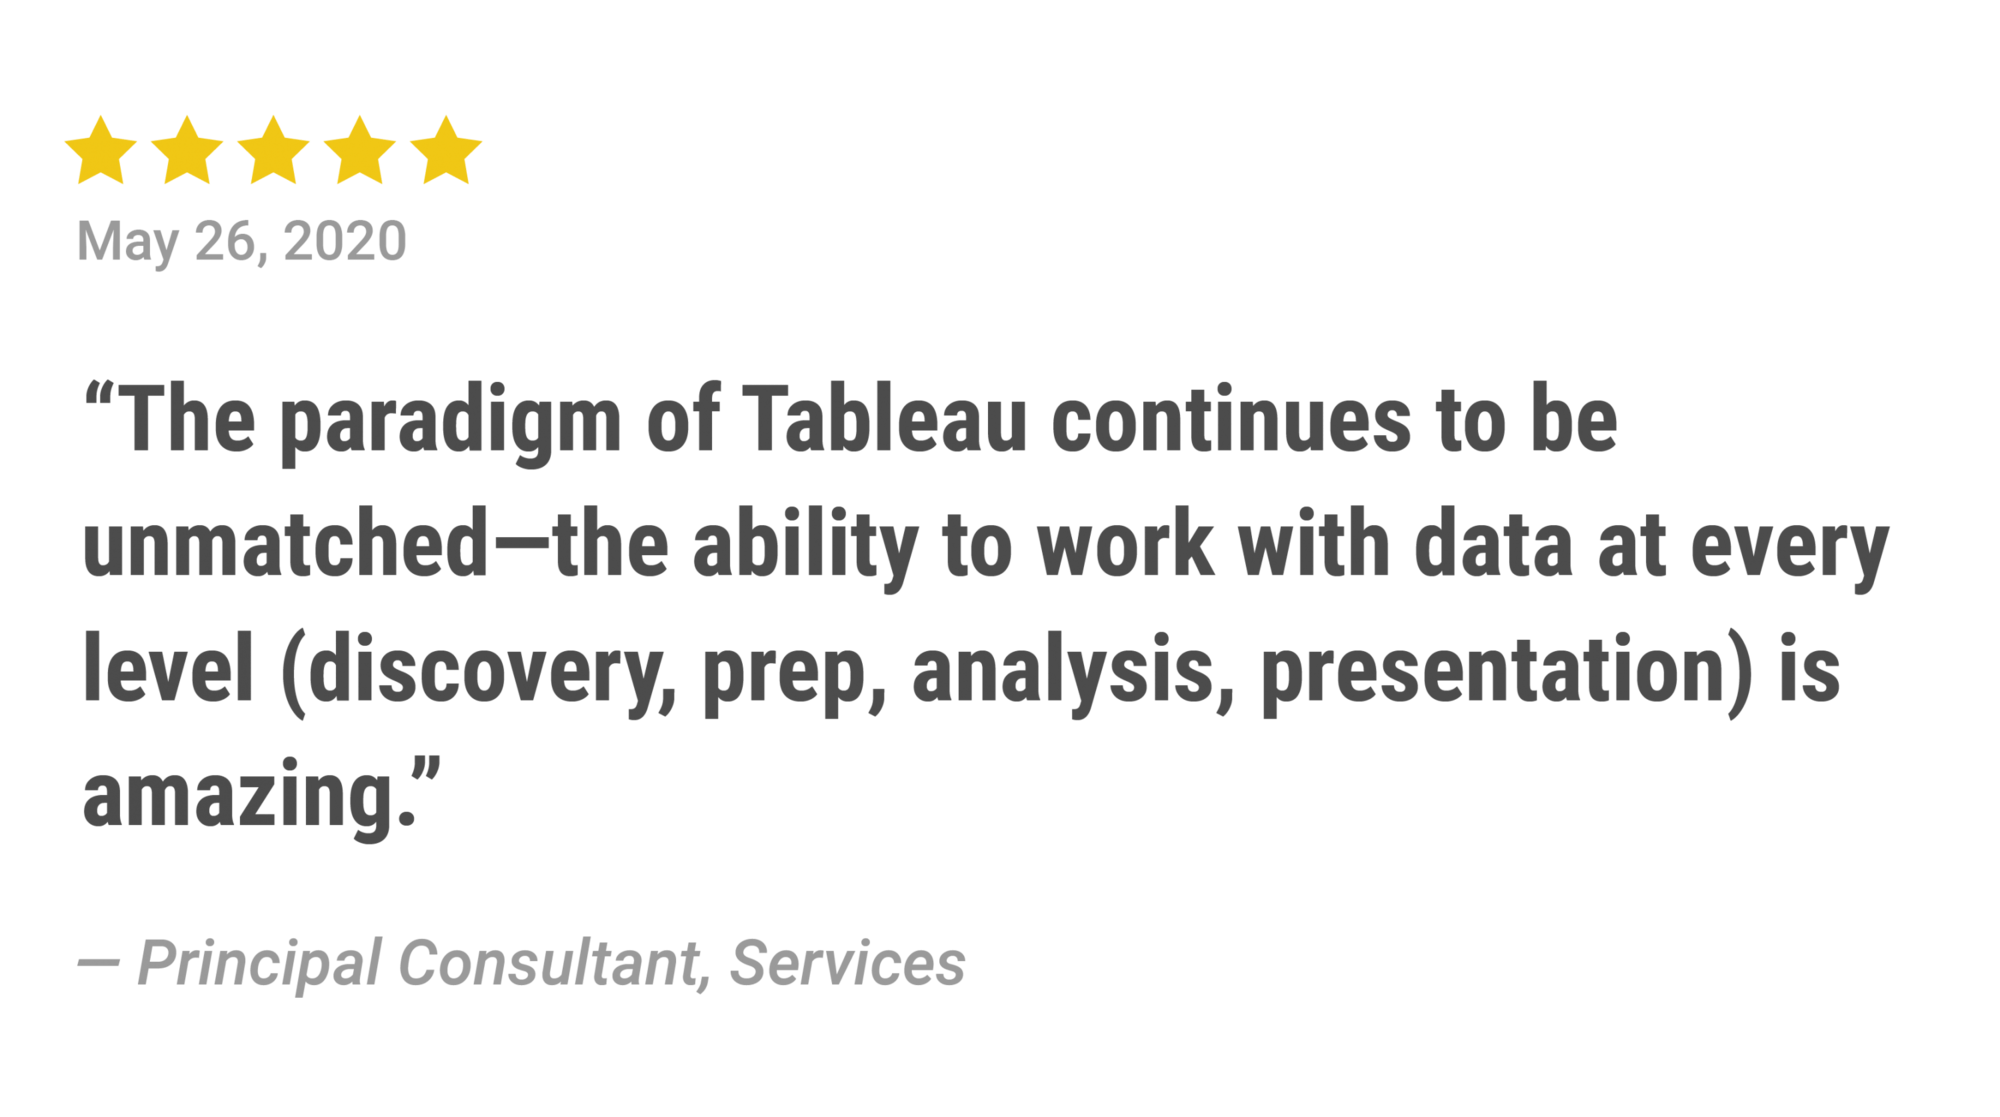 Five stars: The paradigm of Tableau continues to be unmatched – the ability to work with data at every level (discovery, prep, analysis, presentation) is amazing.